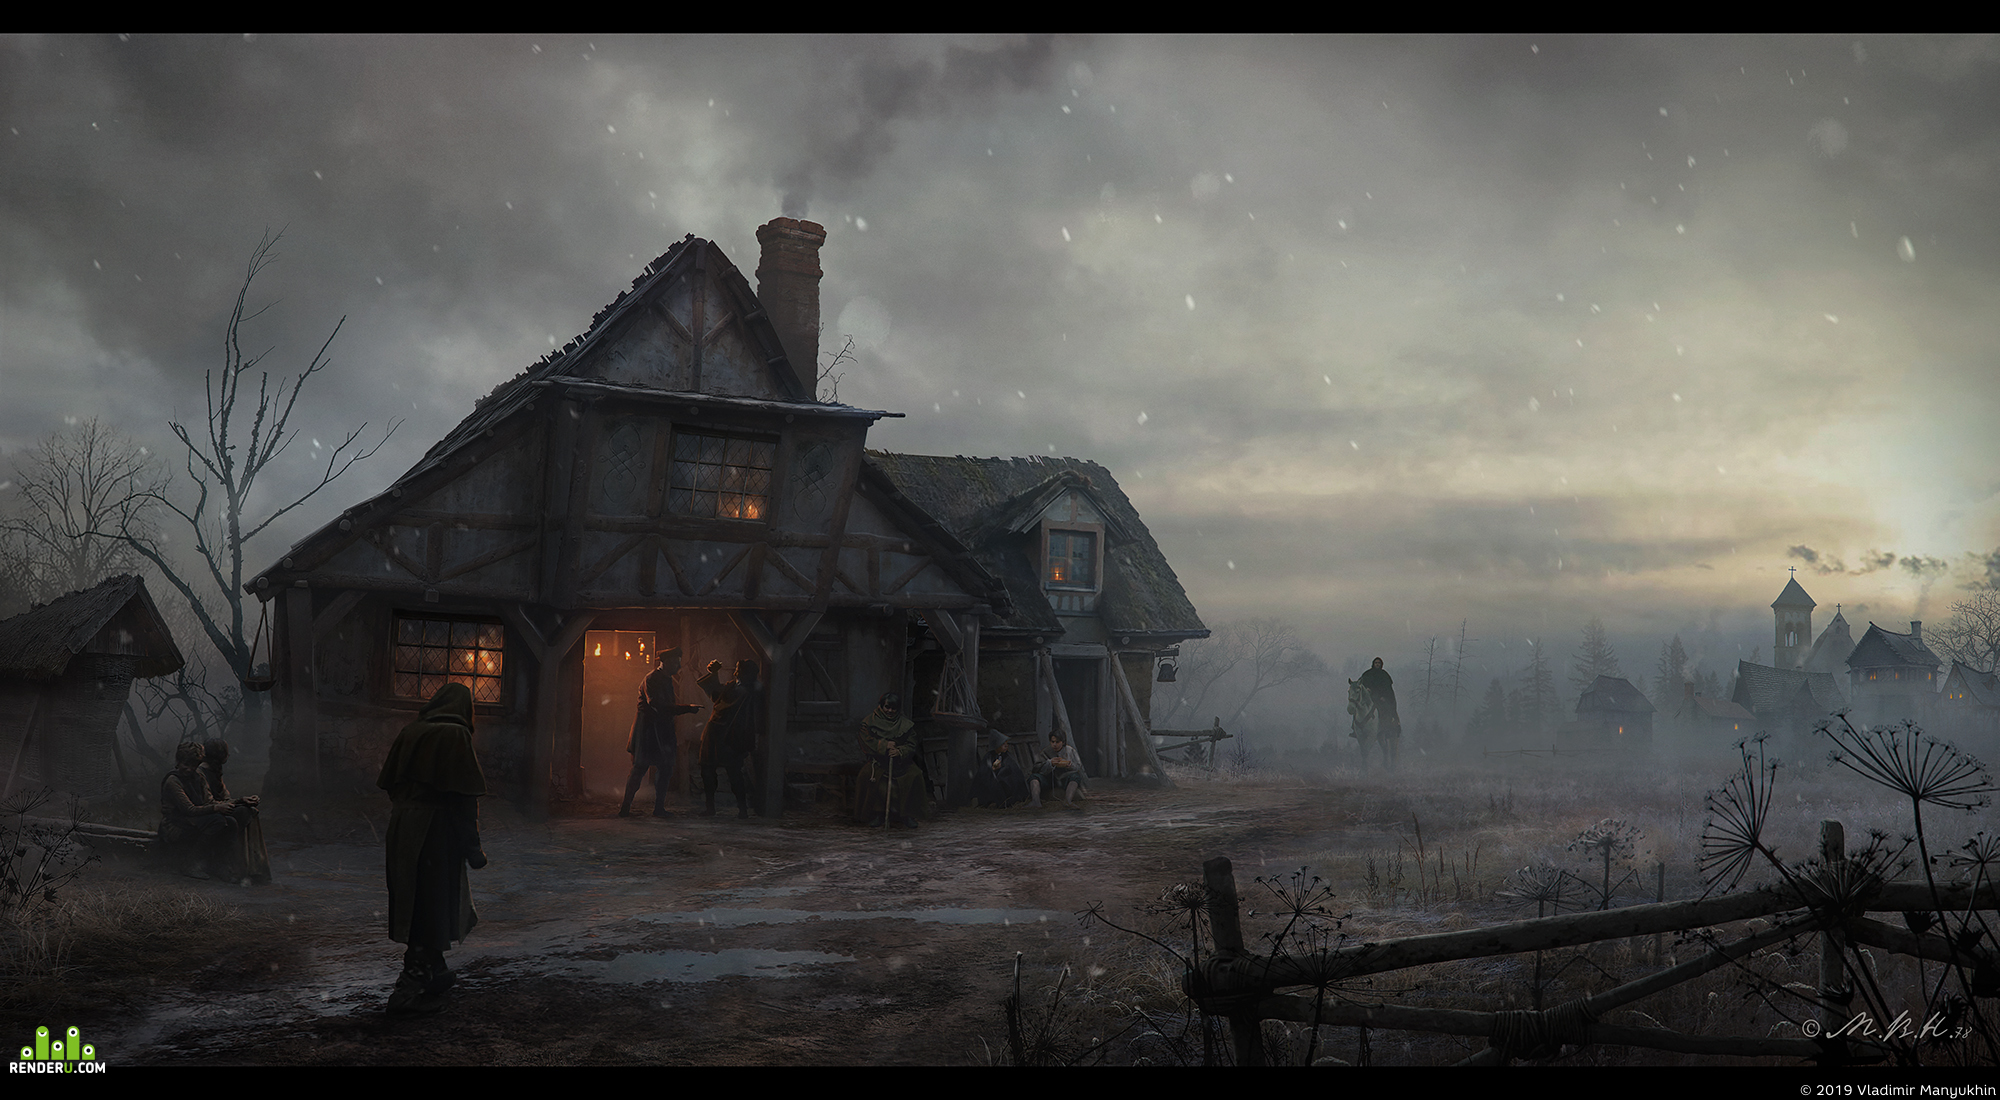 preview Tavern by the road